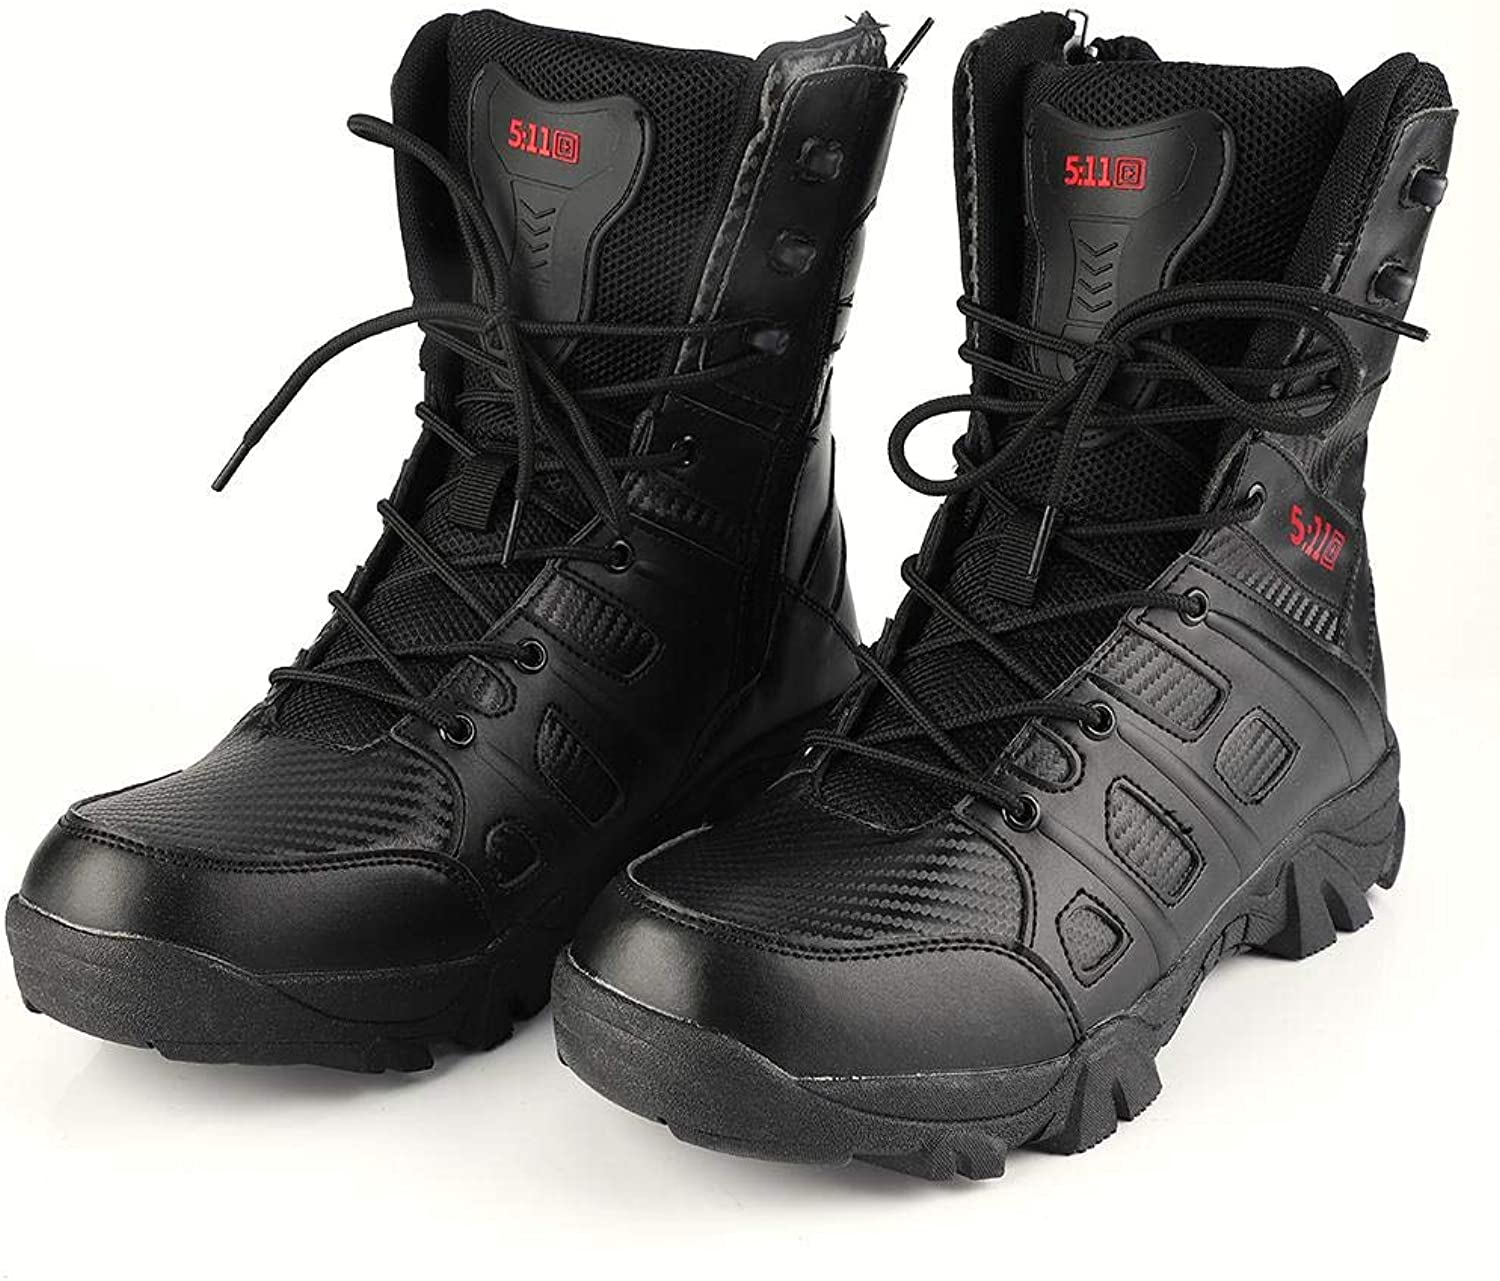 Military Army Boots, Men Hightop Outdoor shoes Assault Combat Boot for Climbing Trekking Hiking shoes Lace Up Army Footwear